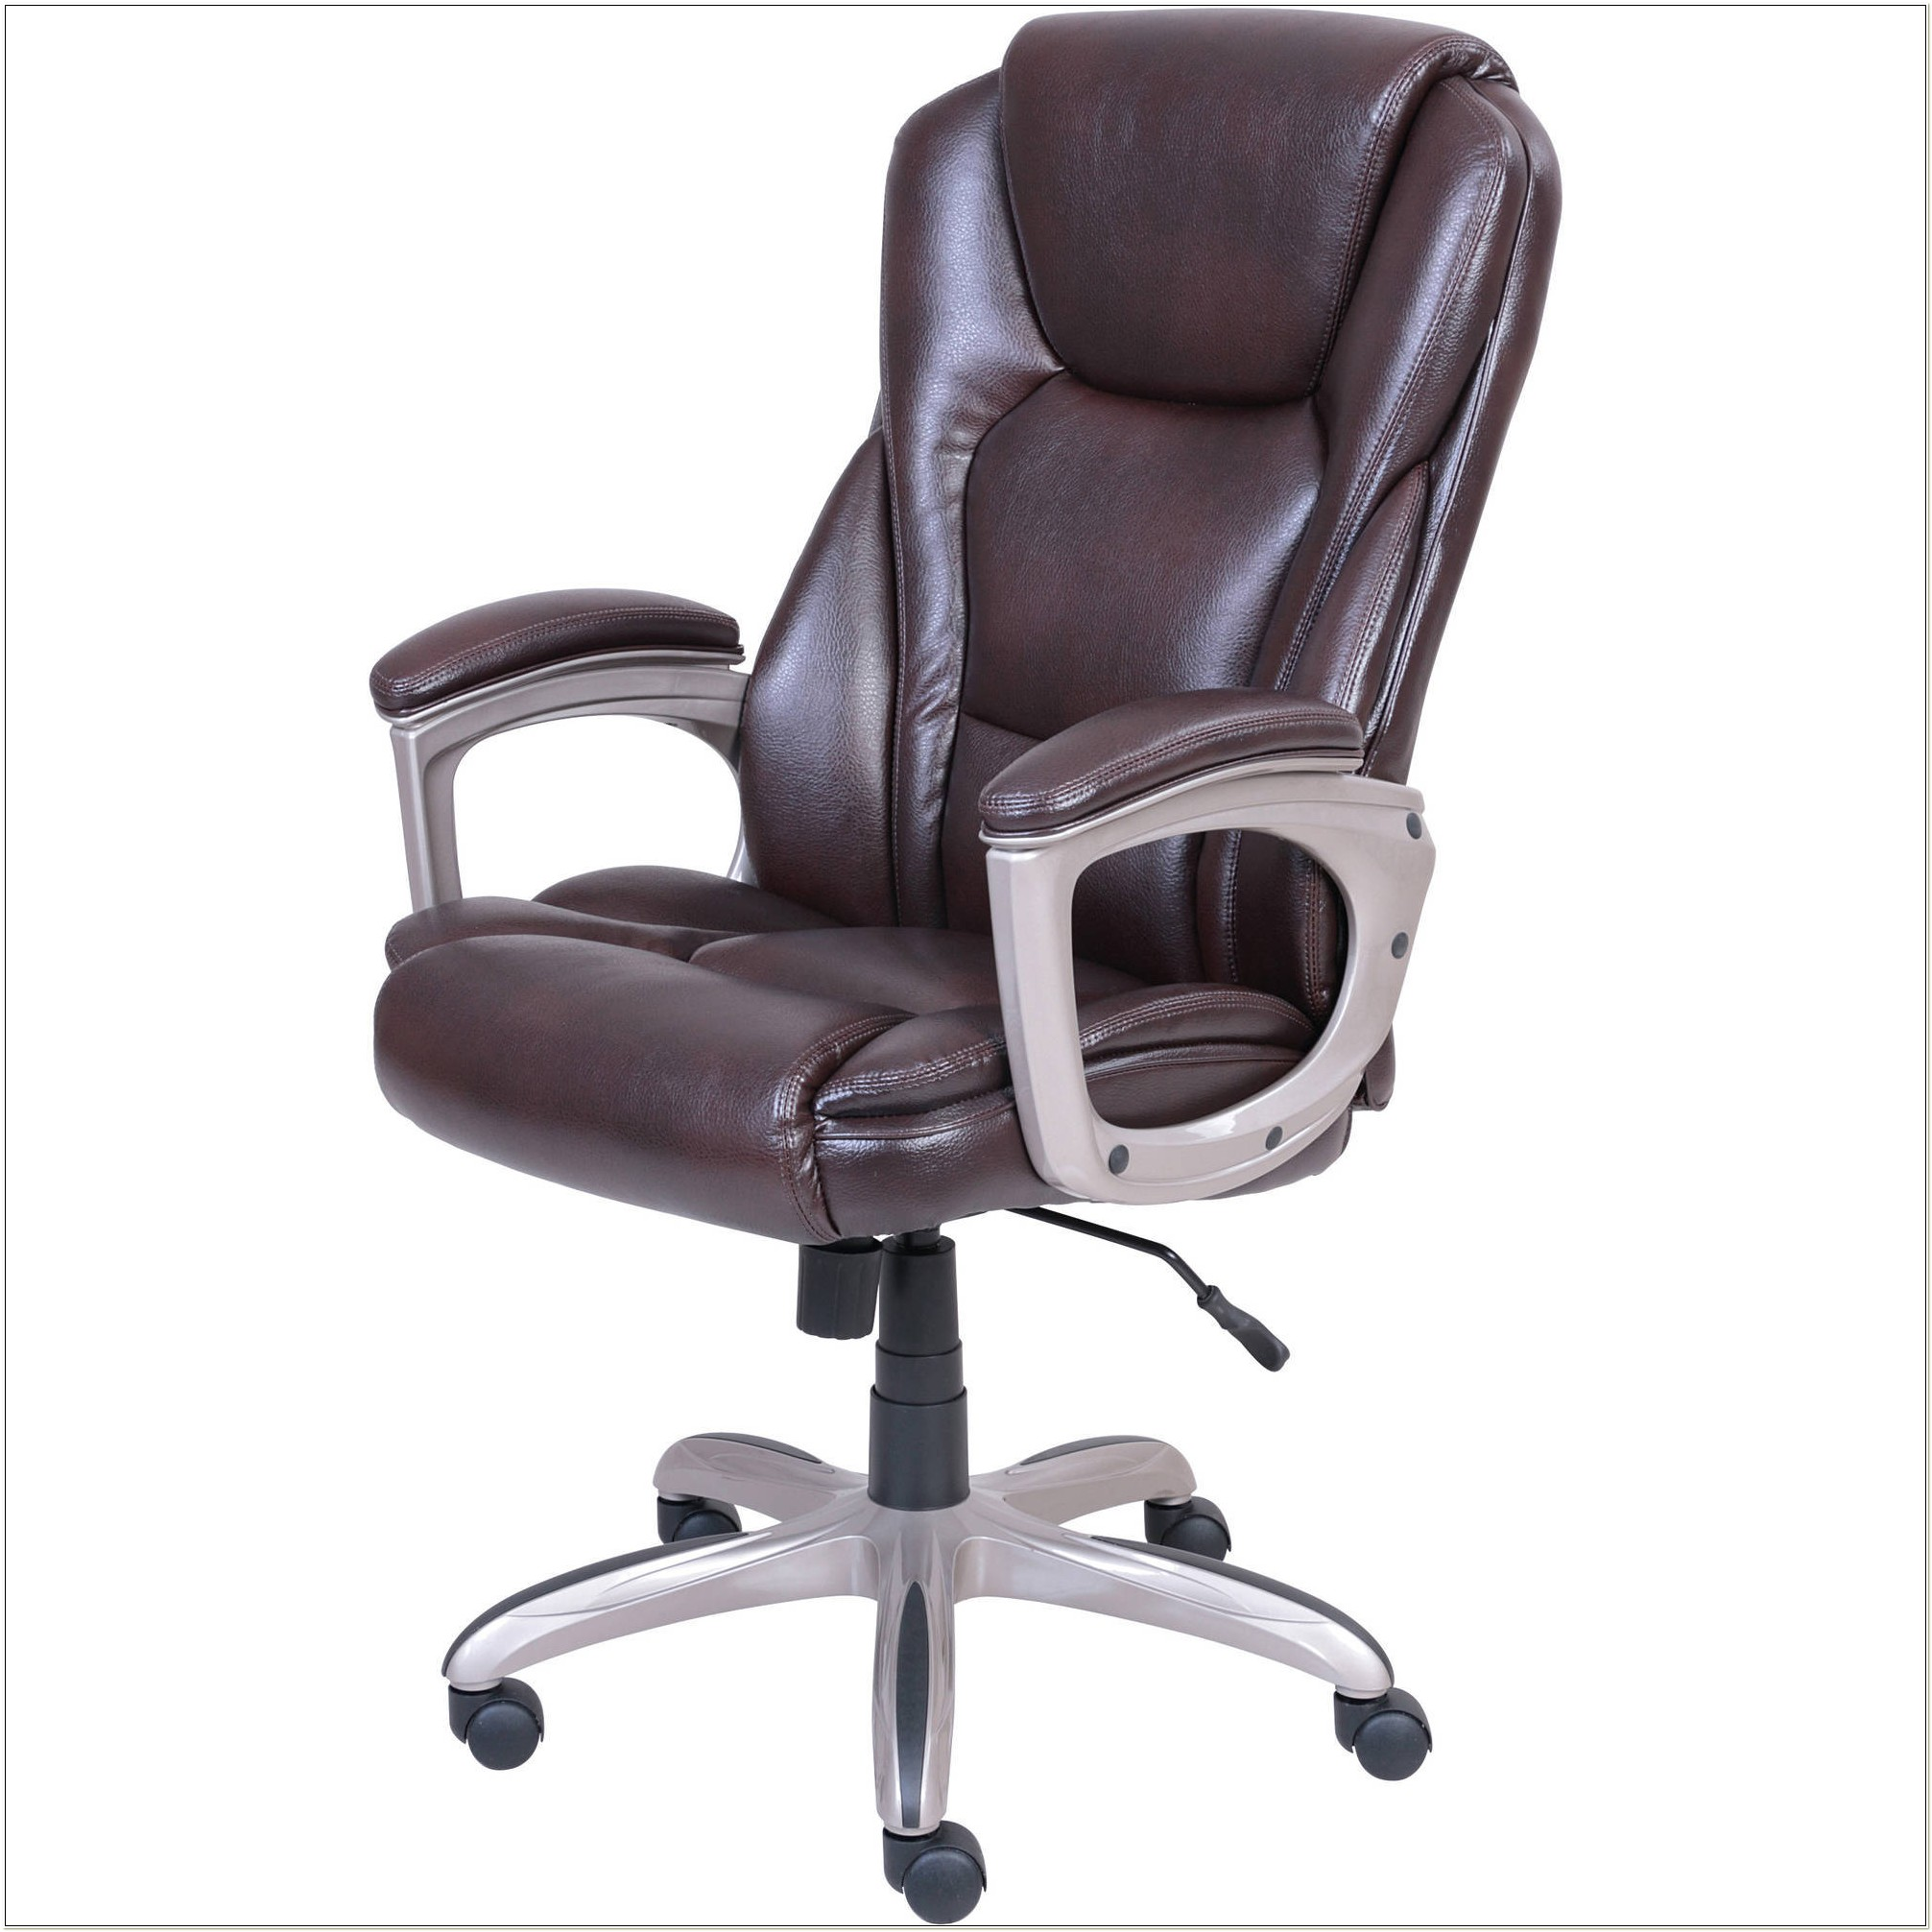 Serta Big And Tall Office Chair